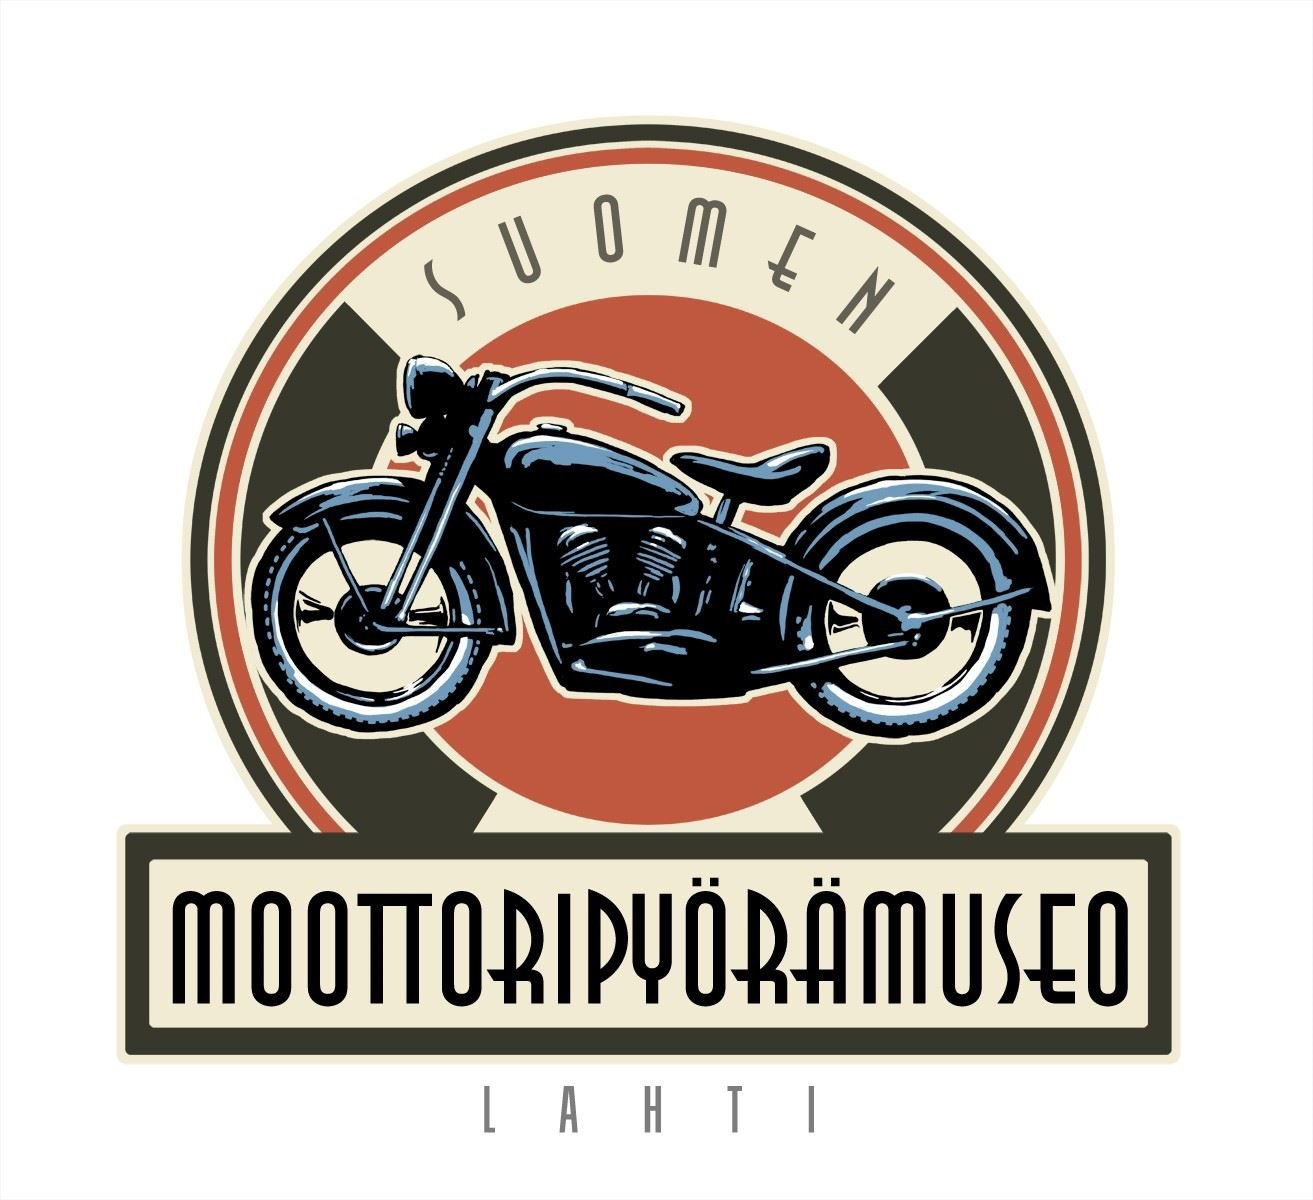 Motorcycle Museum of Finland